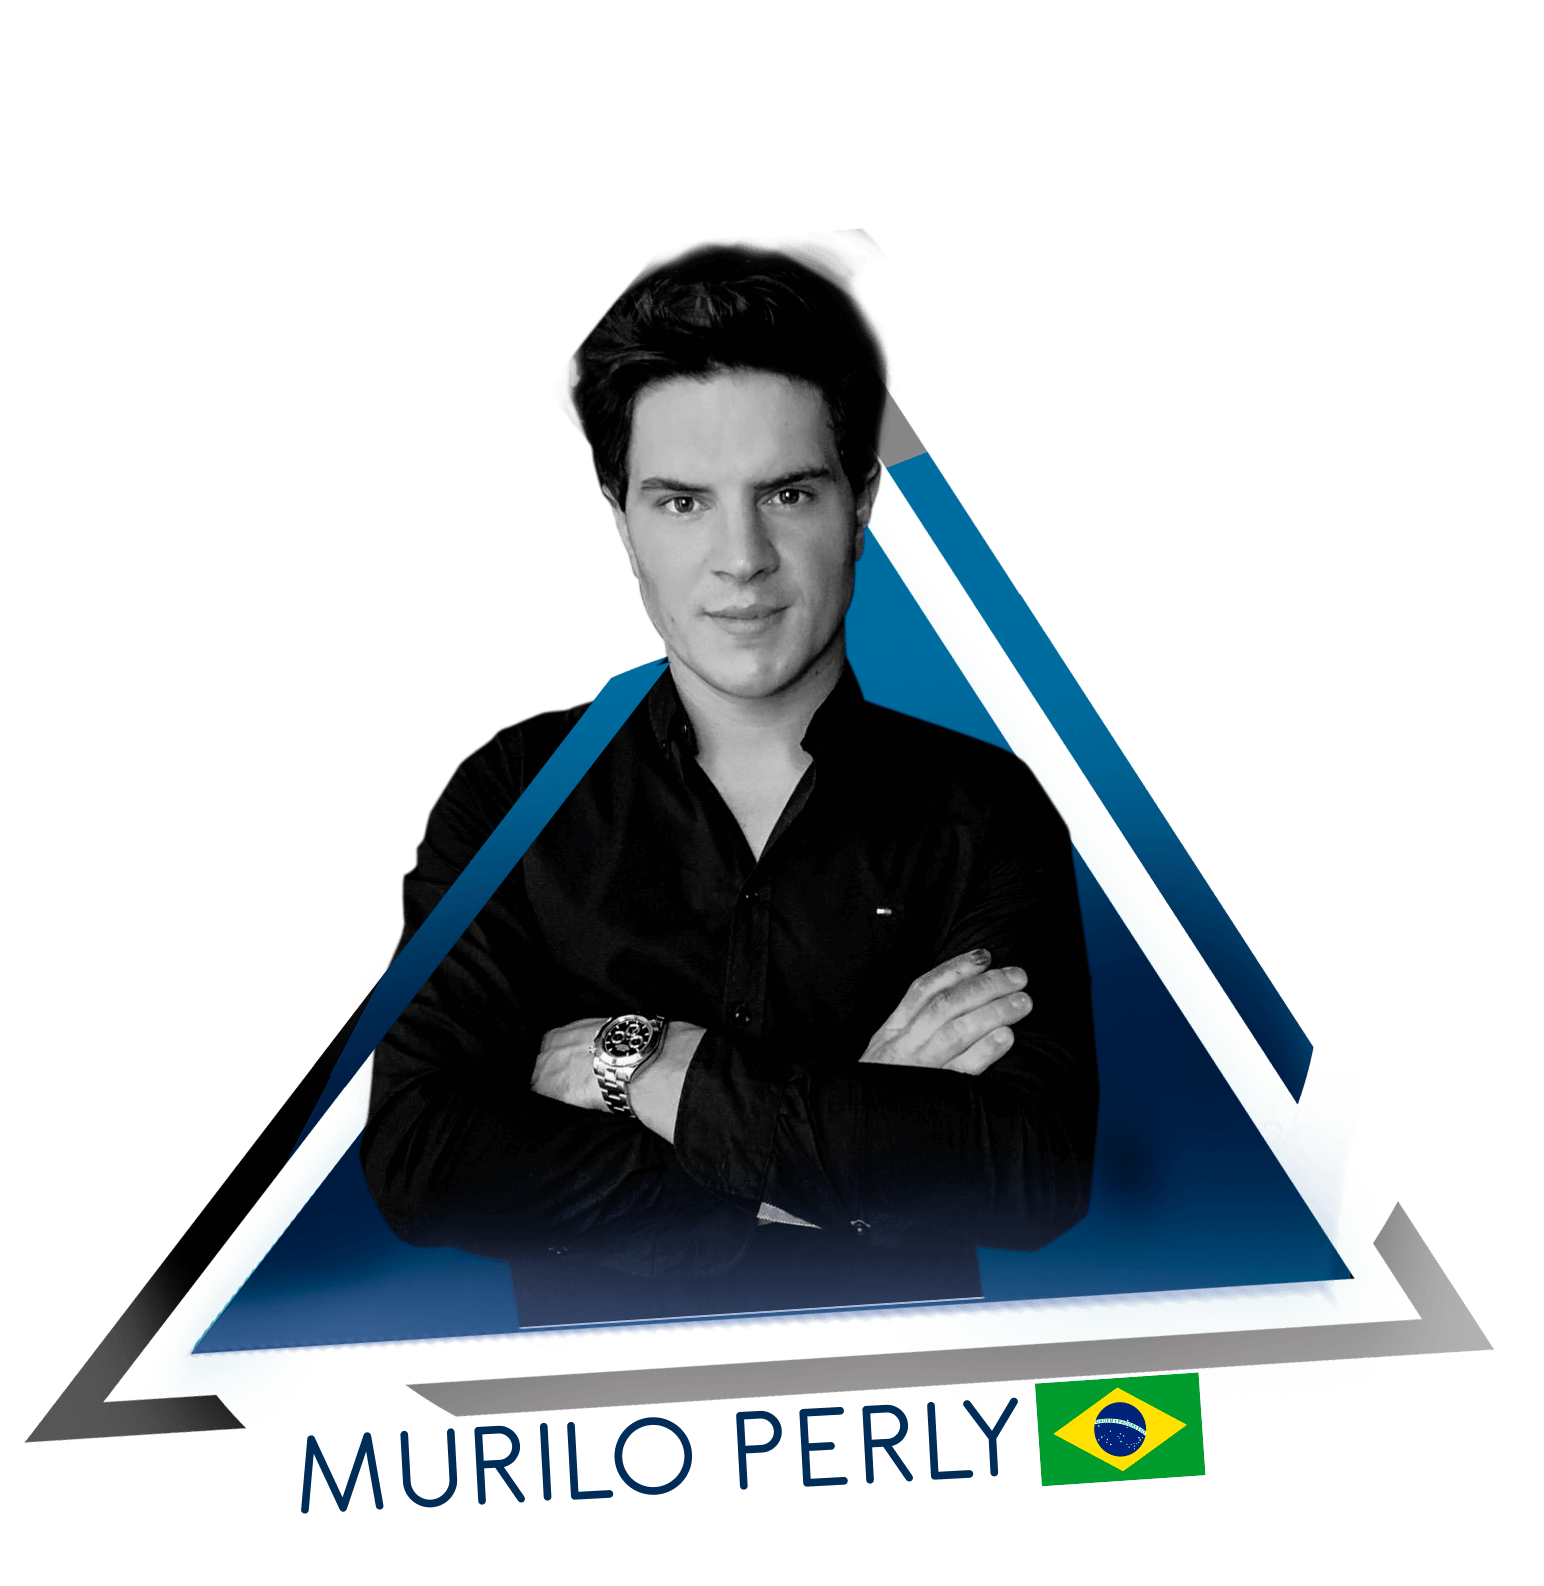 Murilo Perly